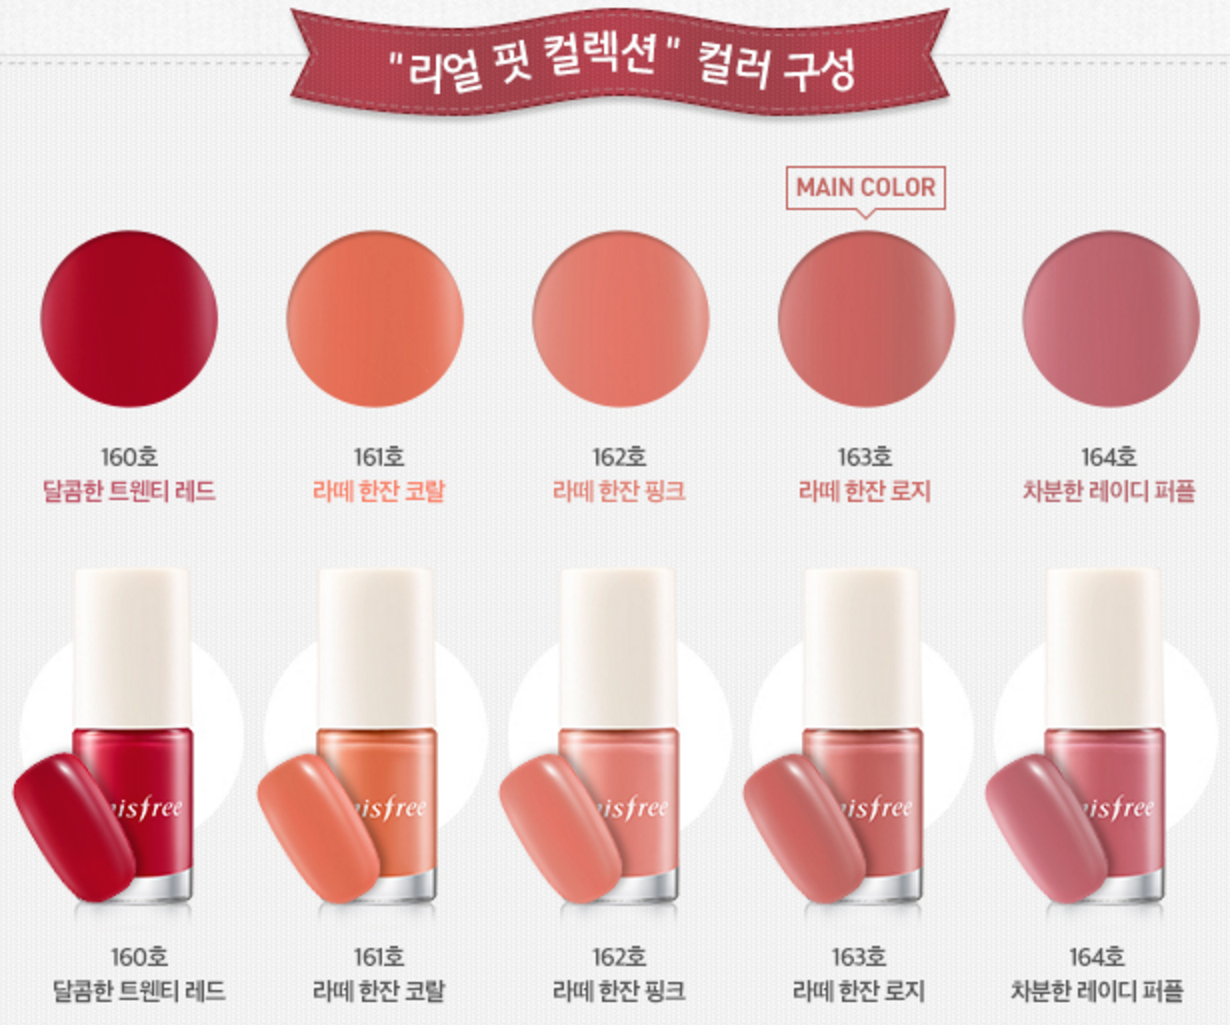 Eco nail color collection PRo Lee at first glance